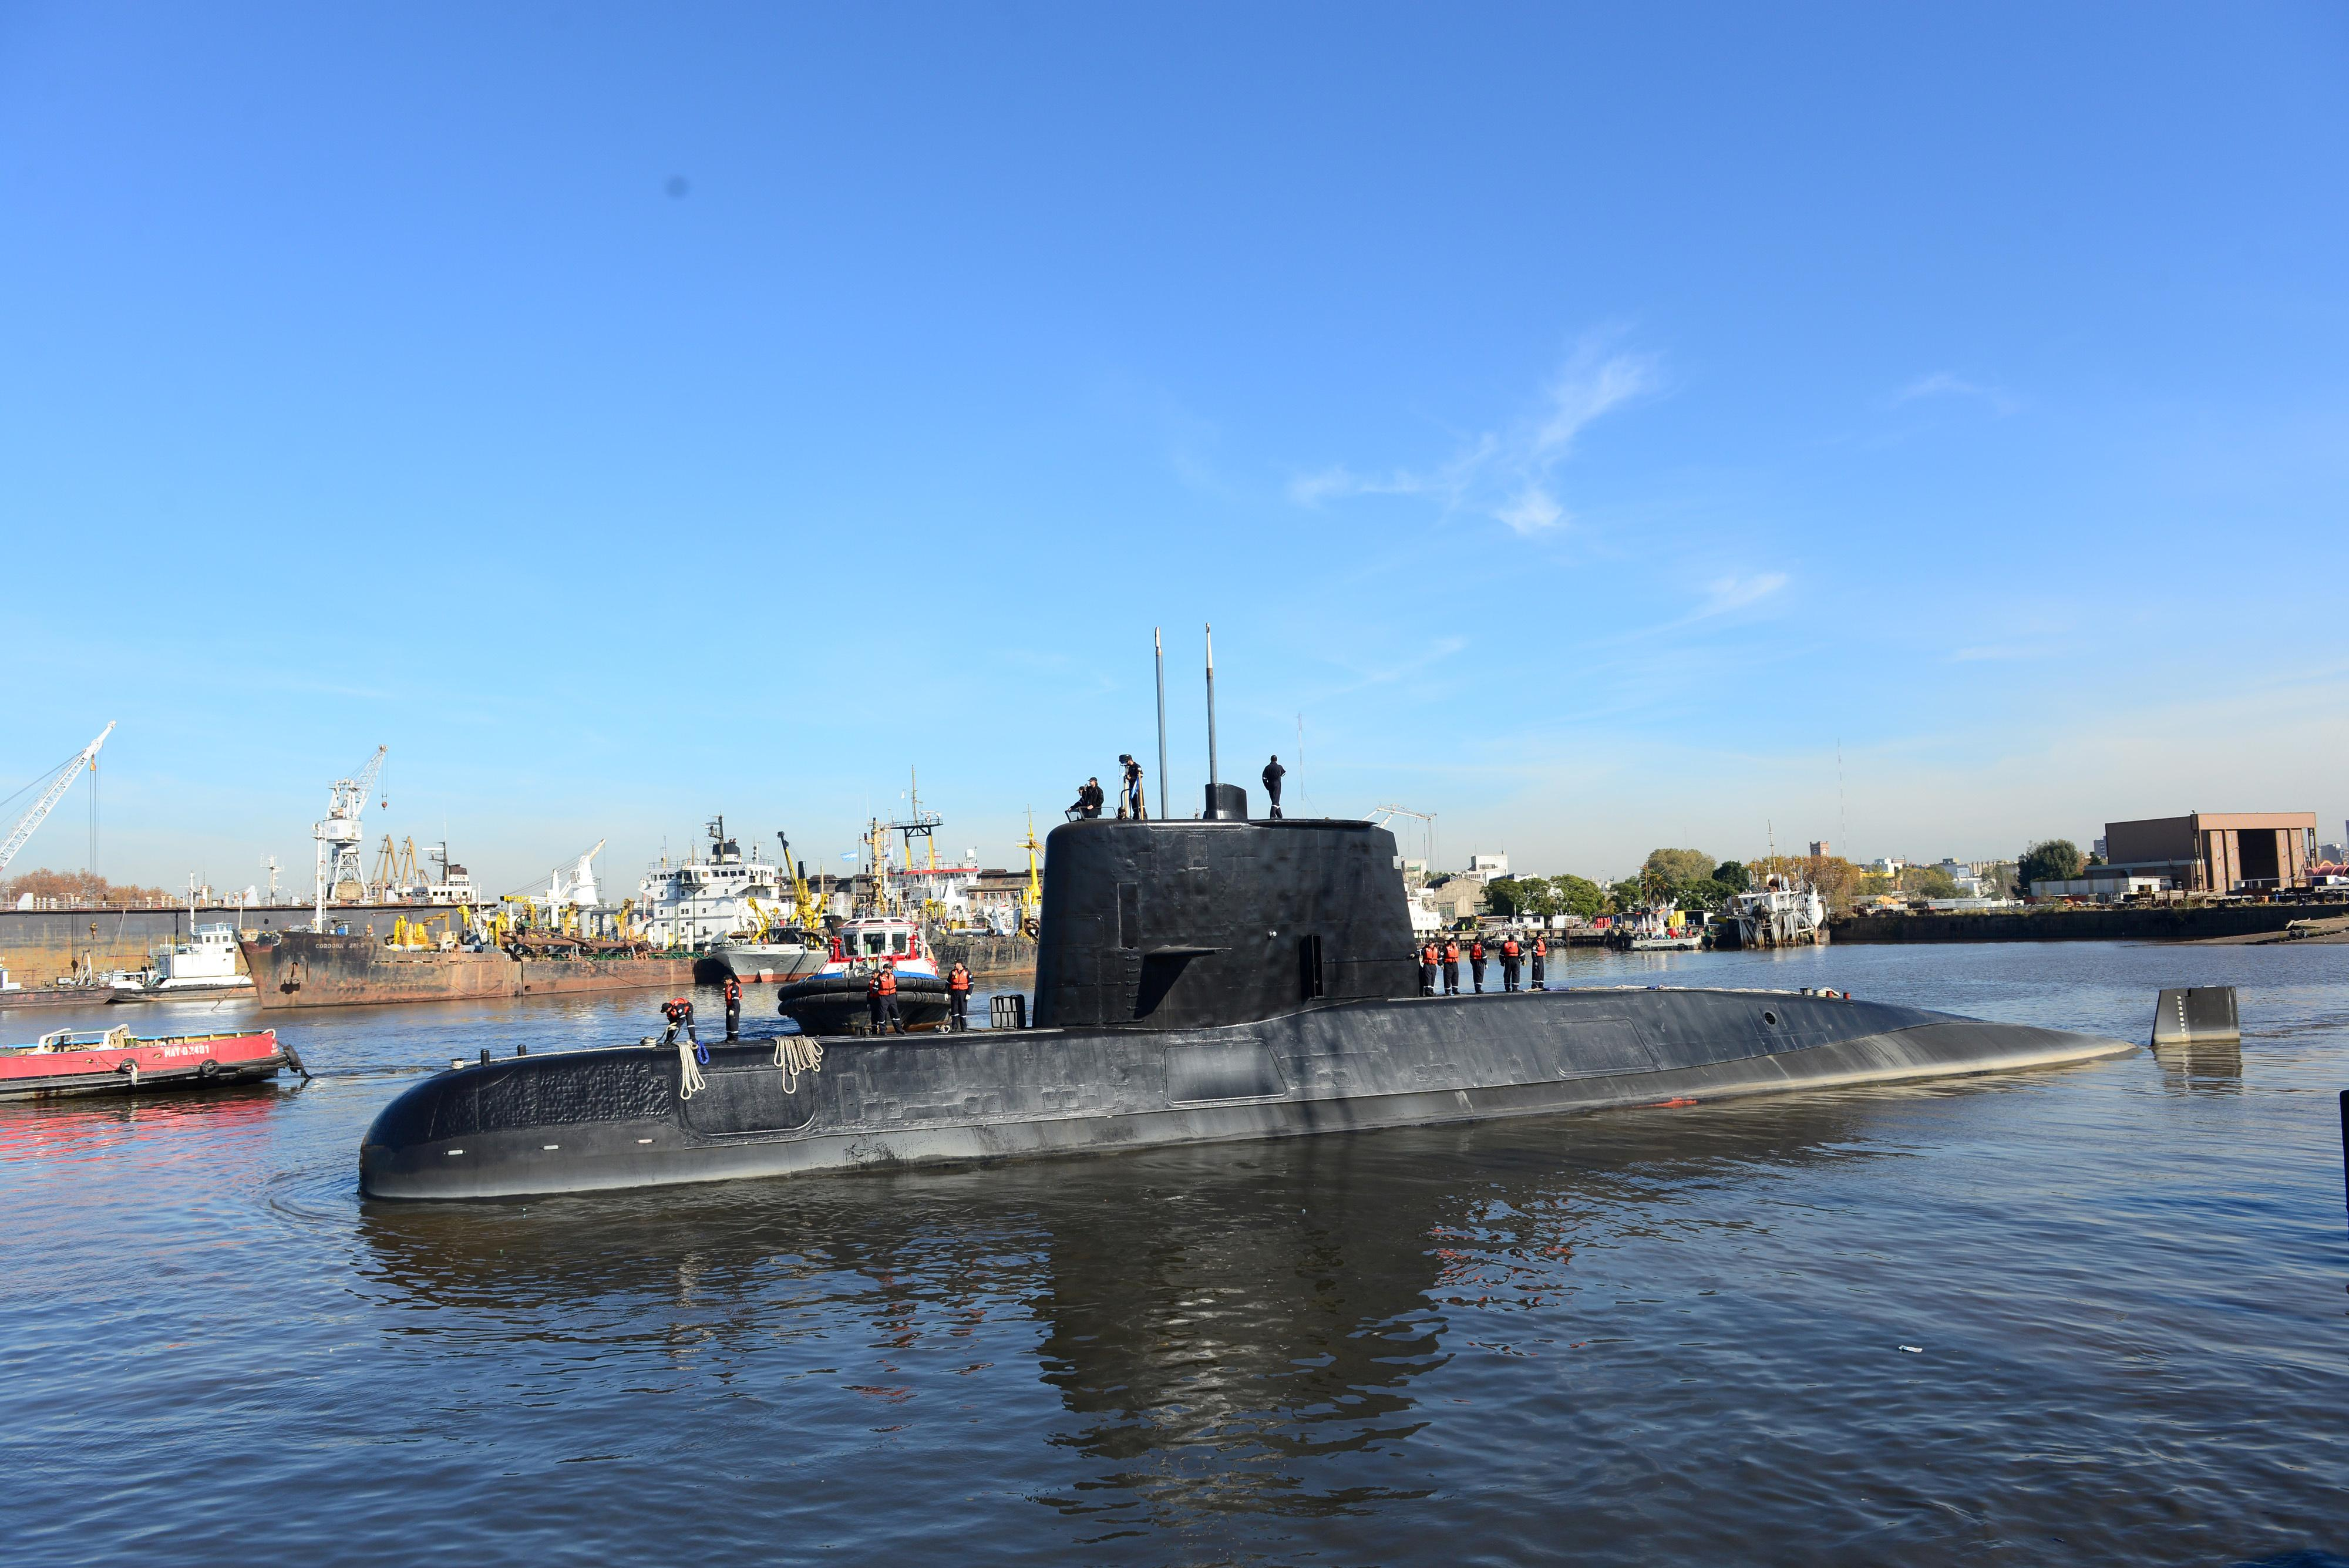 Search for Missing Argentinian Submarine Officially Ends